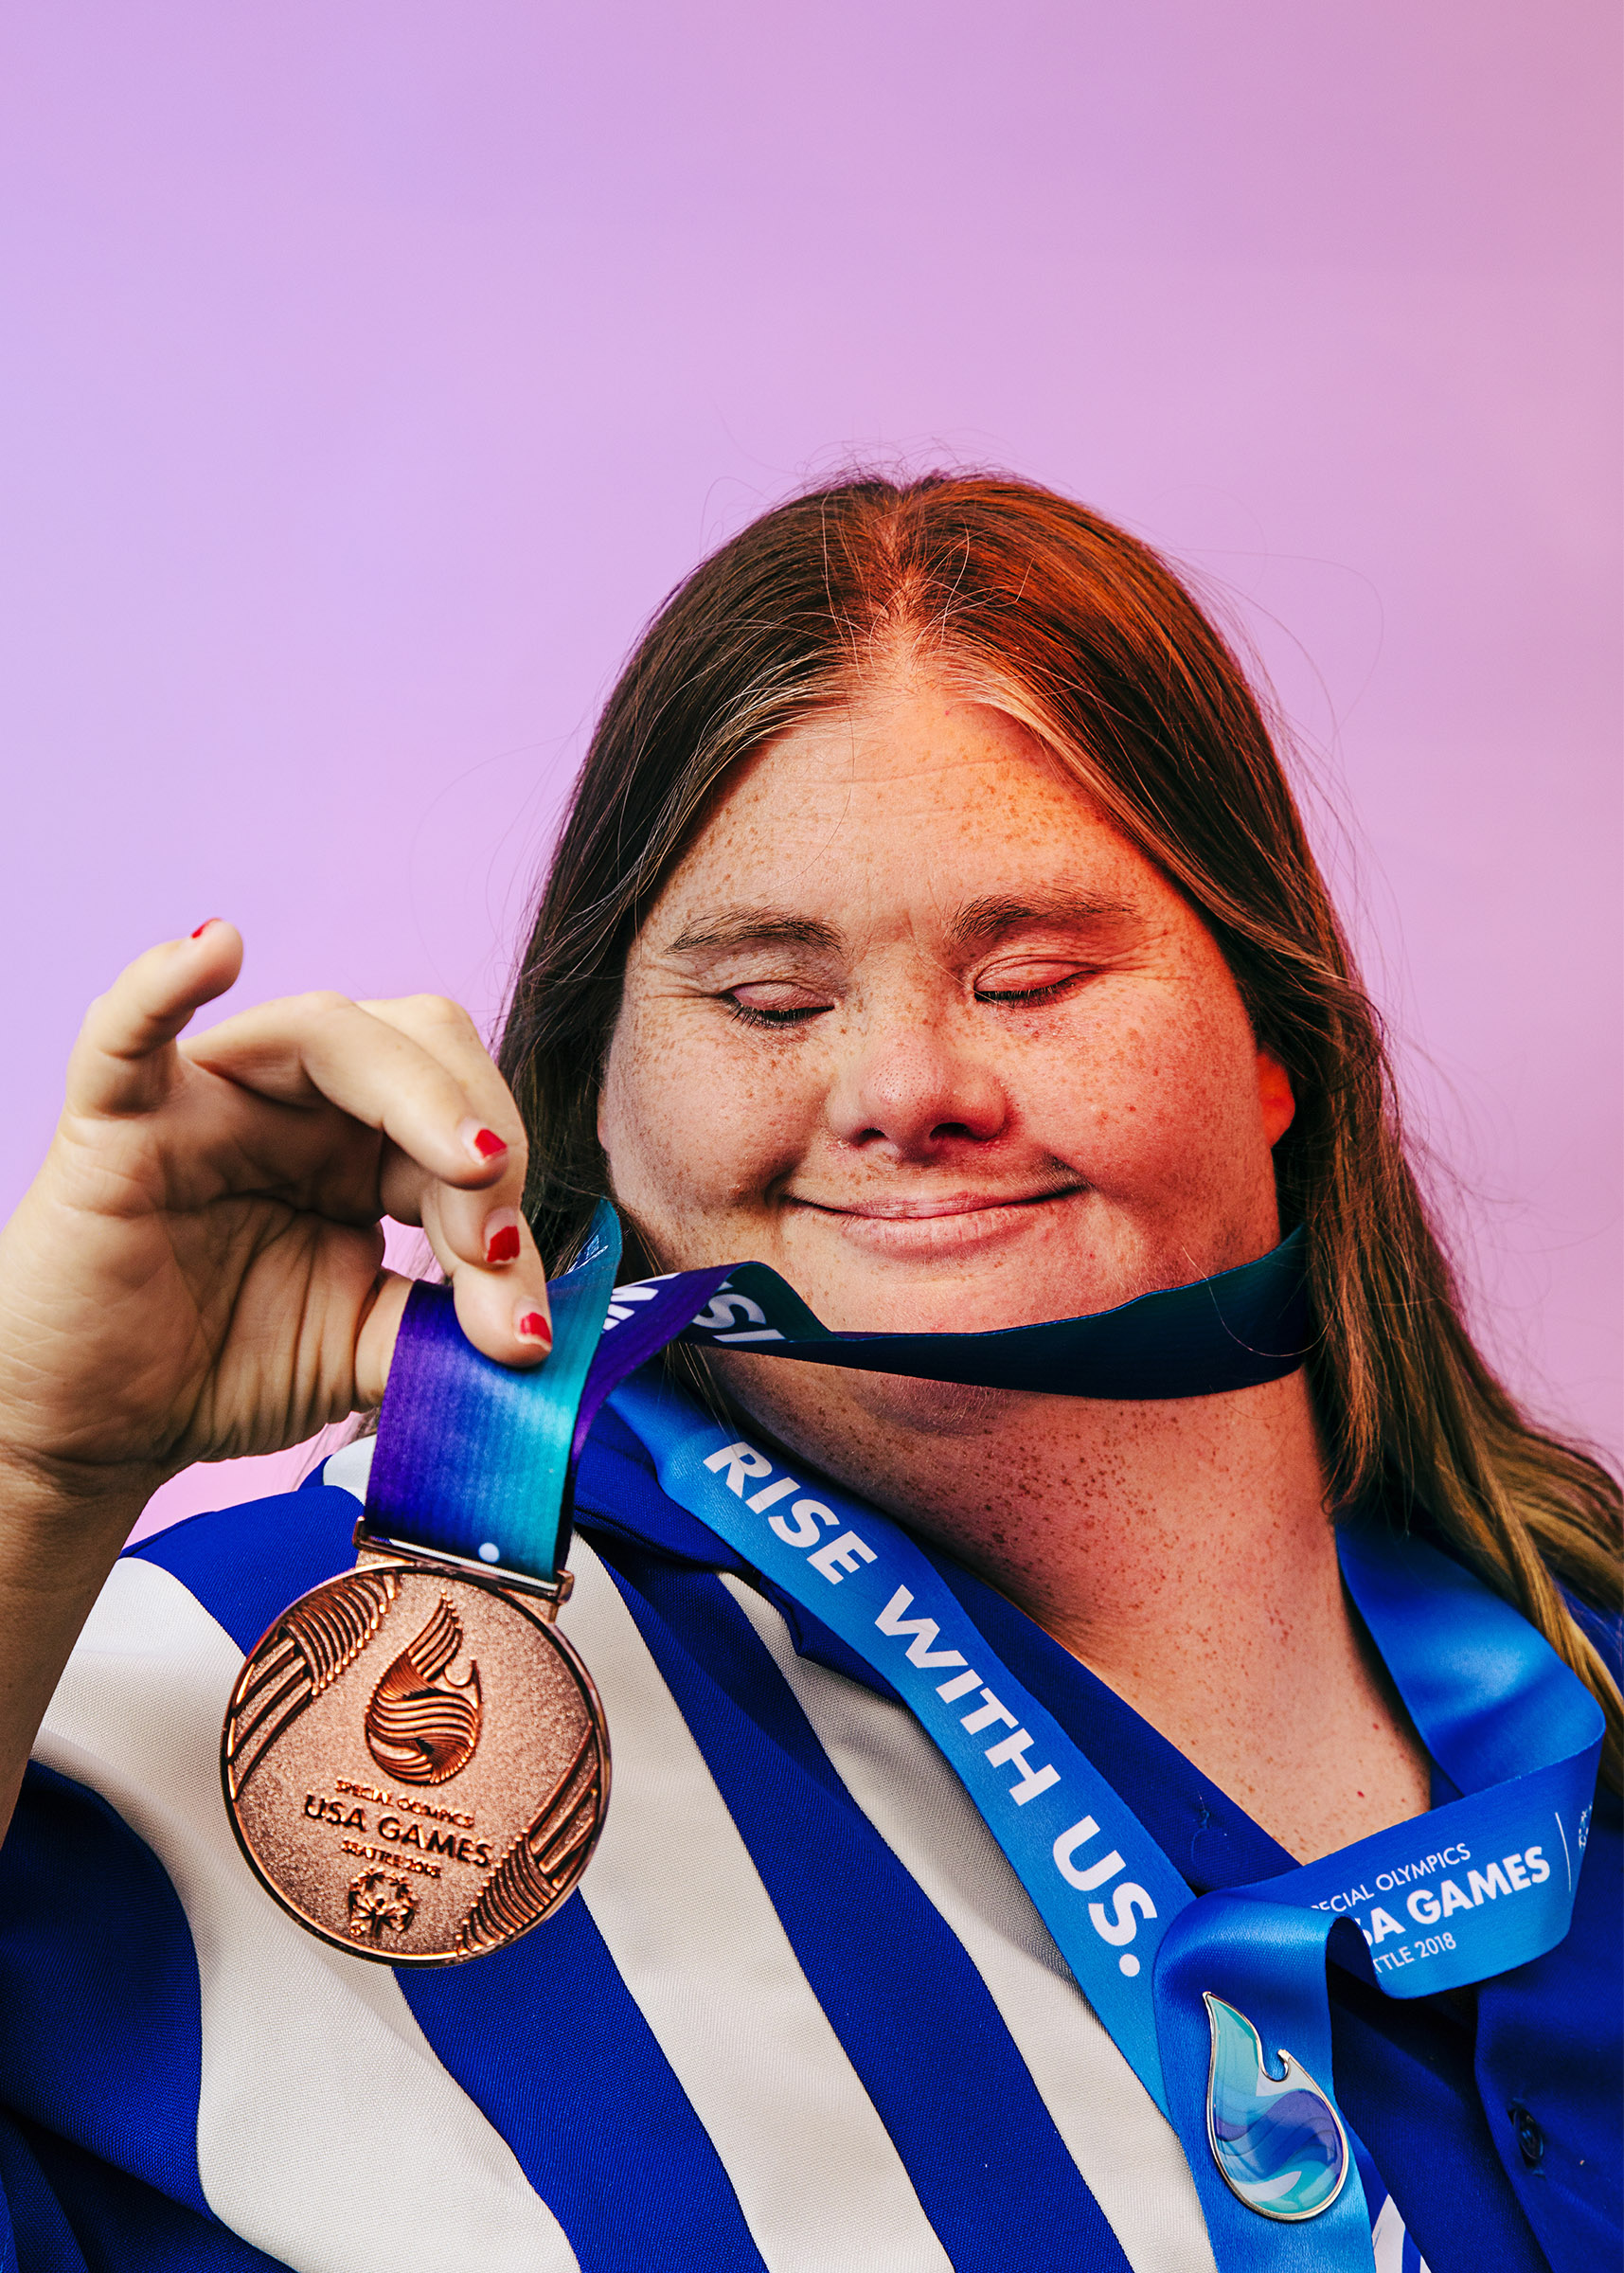 tina cook, special olympics, quinn russell brown